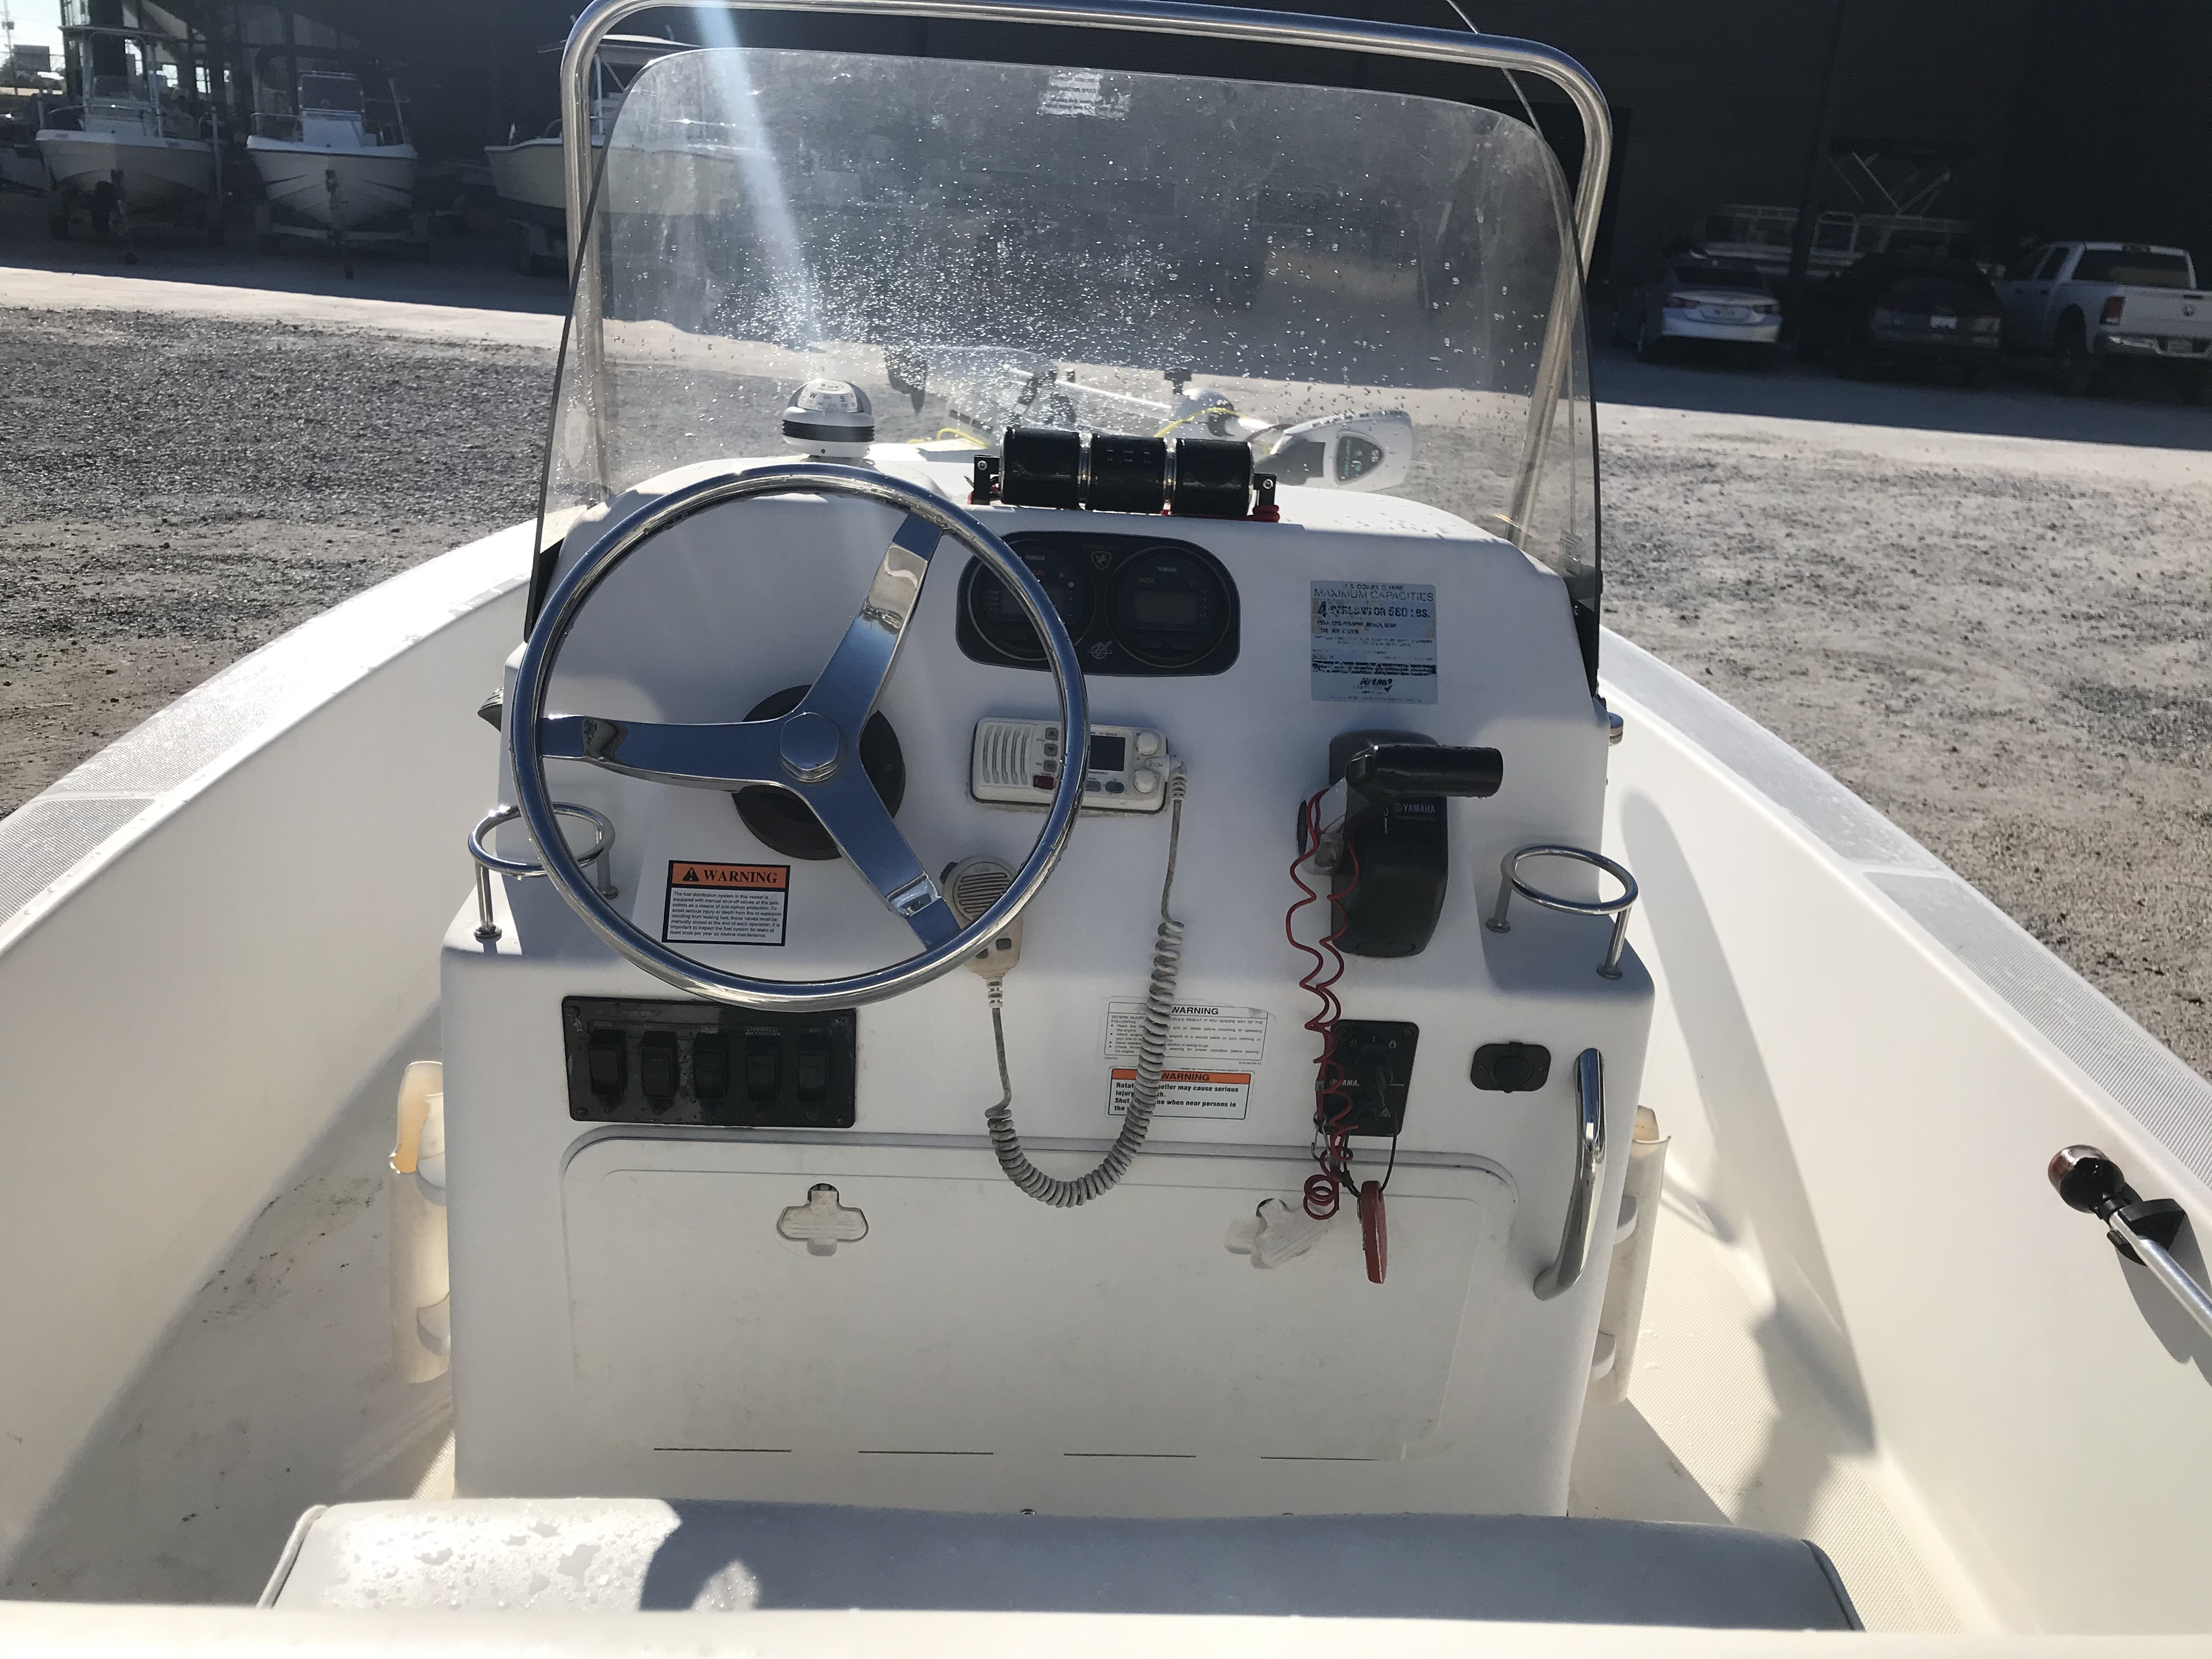 2007 Century boat for sale, model of the boat is 1701 SV & Image # 4 of 8